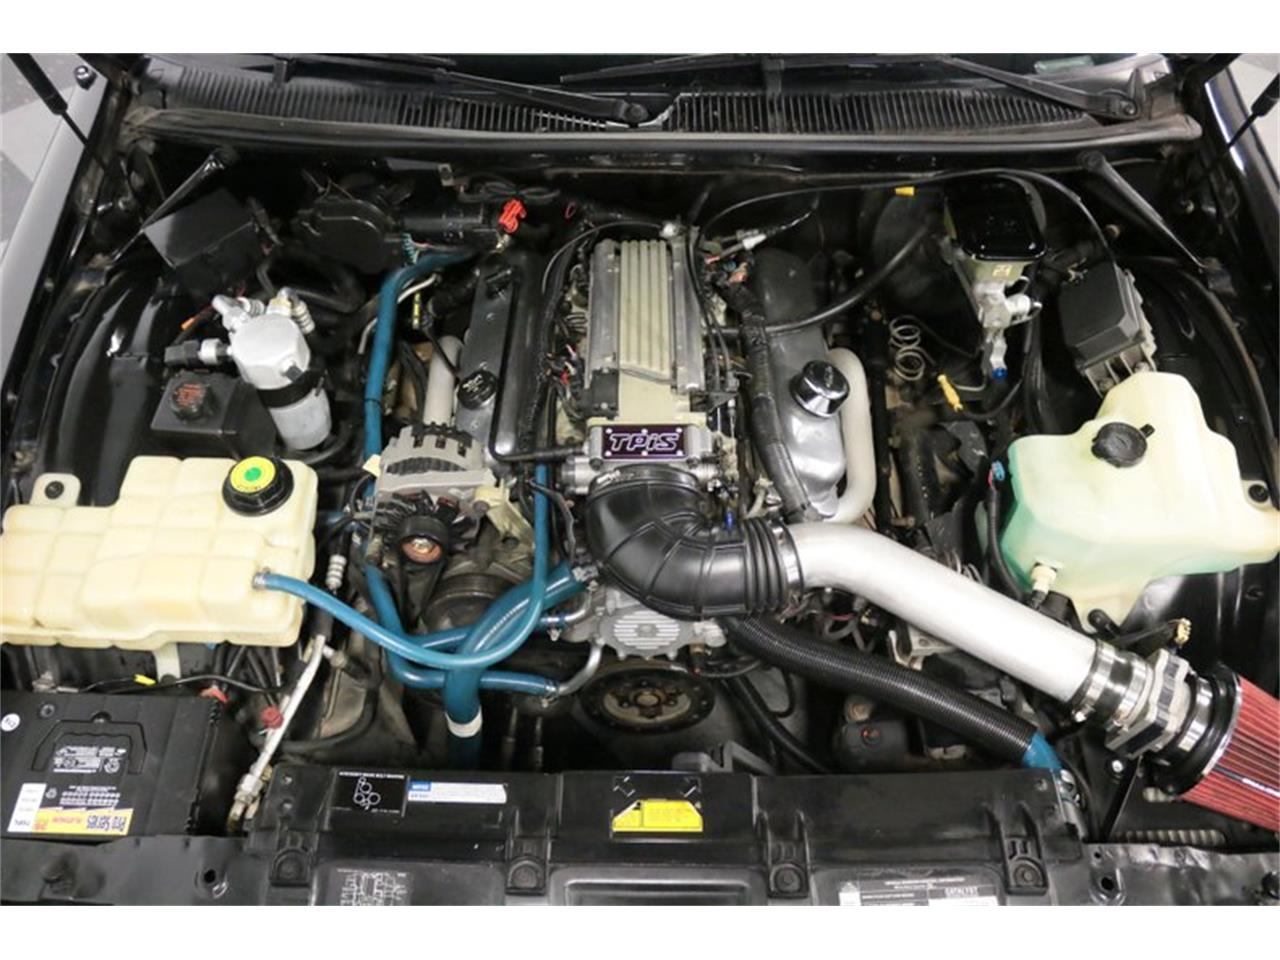 For Sale: 1994 Chevrolet Impala in Ft Worth, Texas